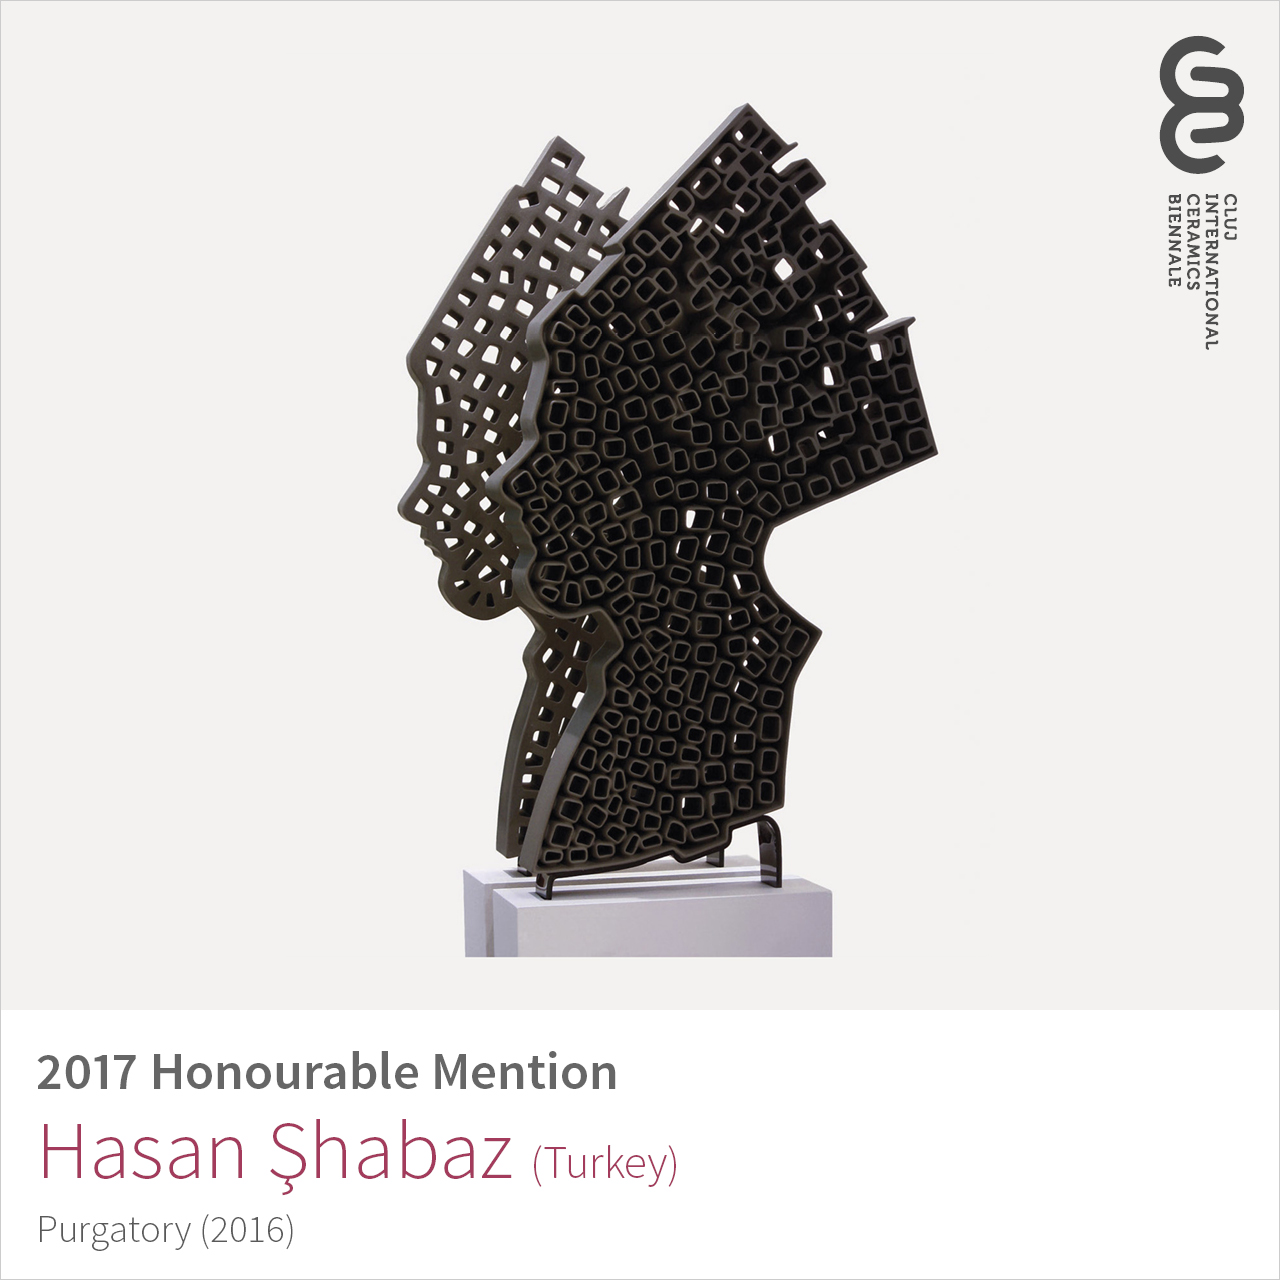 Hasan Şahbaz (Turkey), Honourable Mention at Cluj Ceramics Biennale 2017